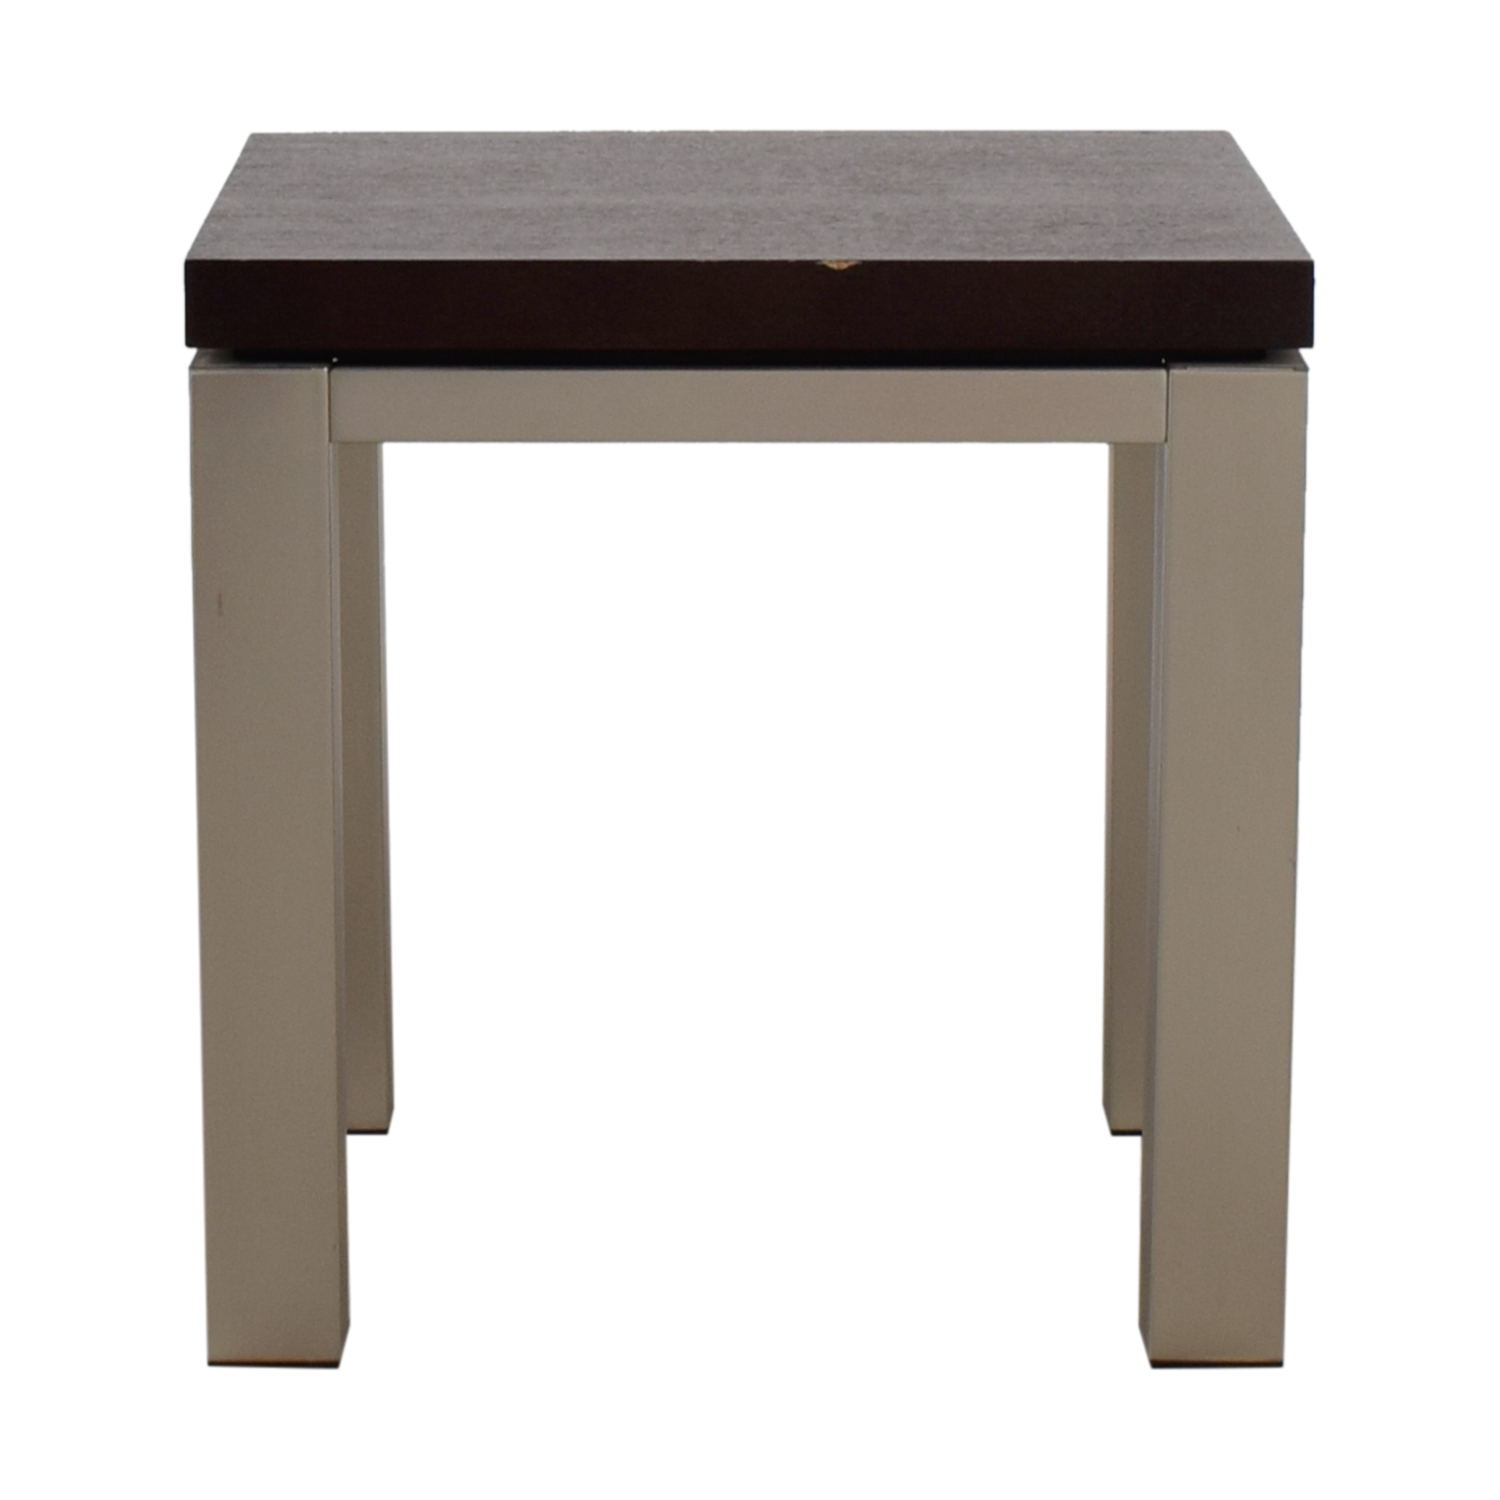 Two-Toned Side table / Tables